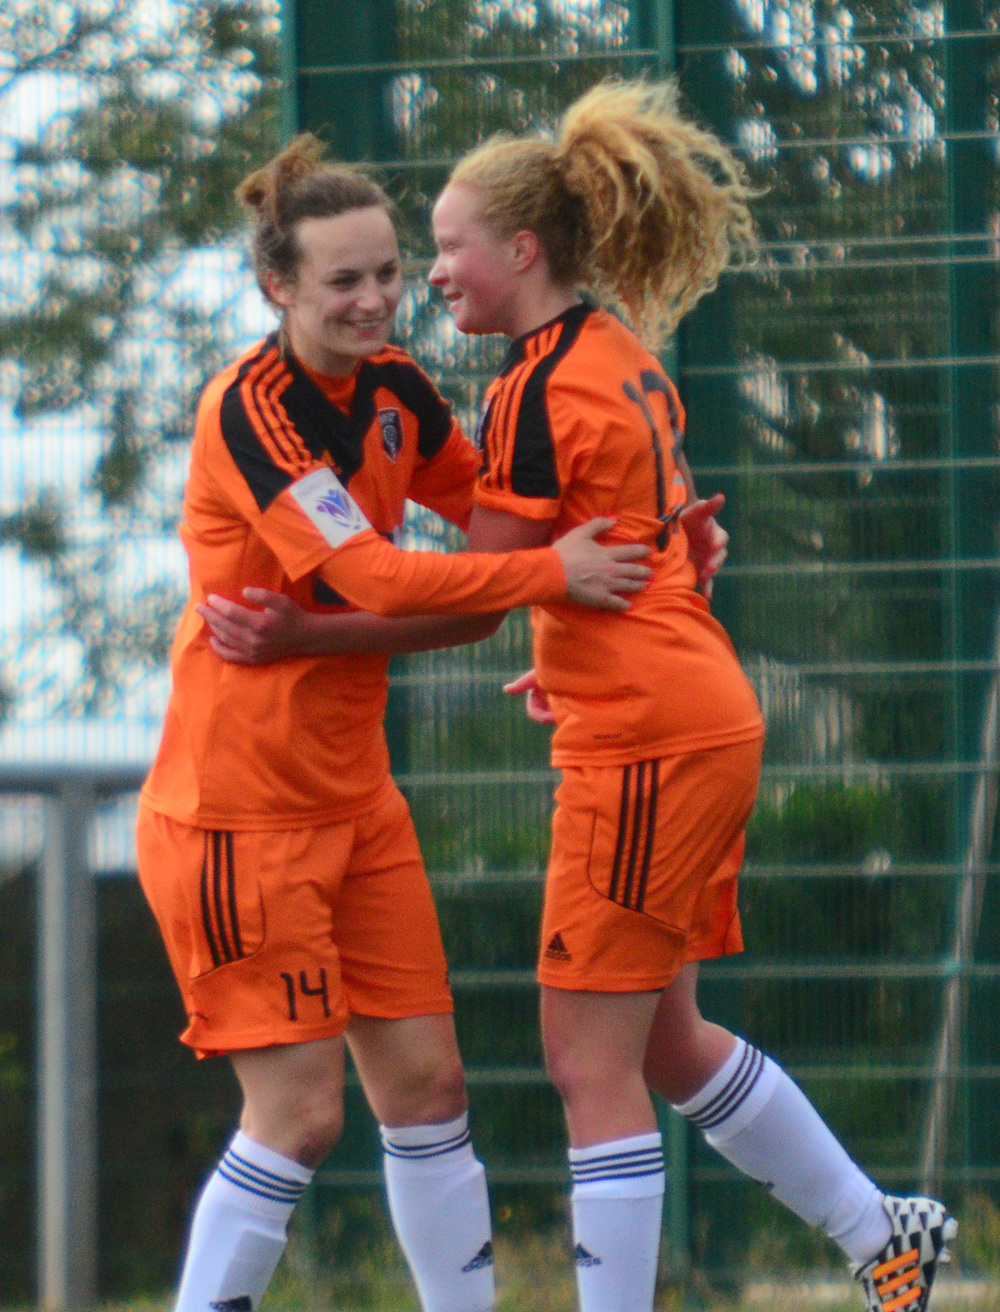 Courtney Whyte & Cheryl McCulloch Celebrate. Image by Graeme Berry.